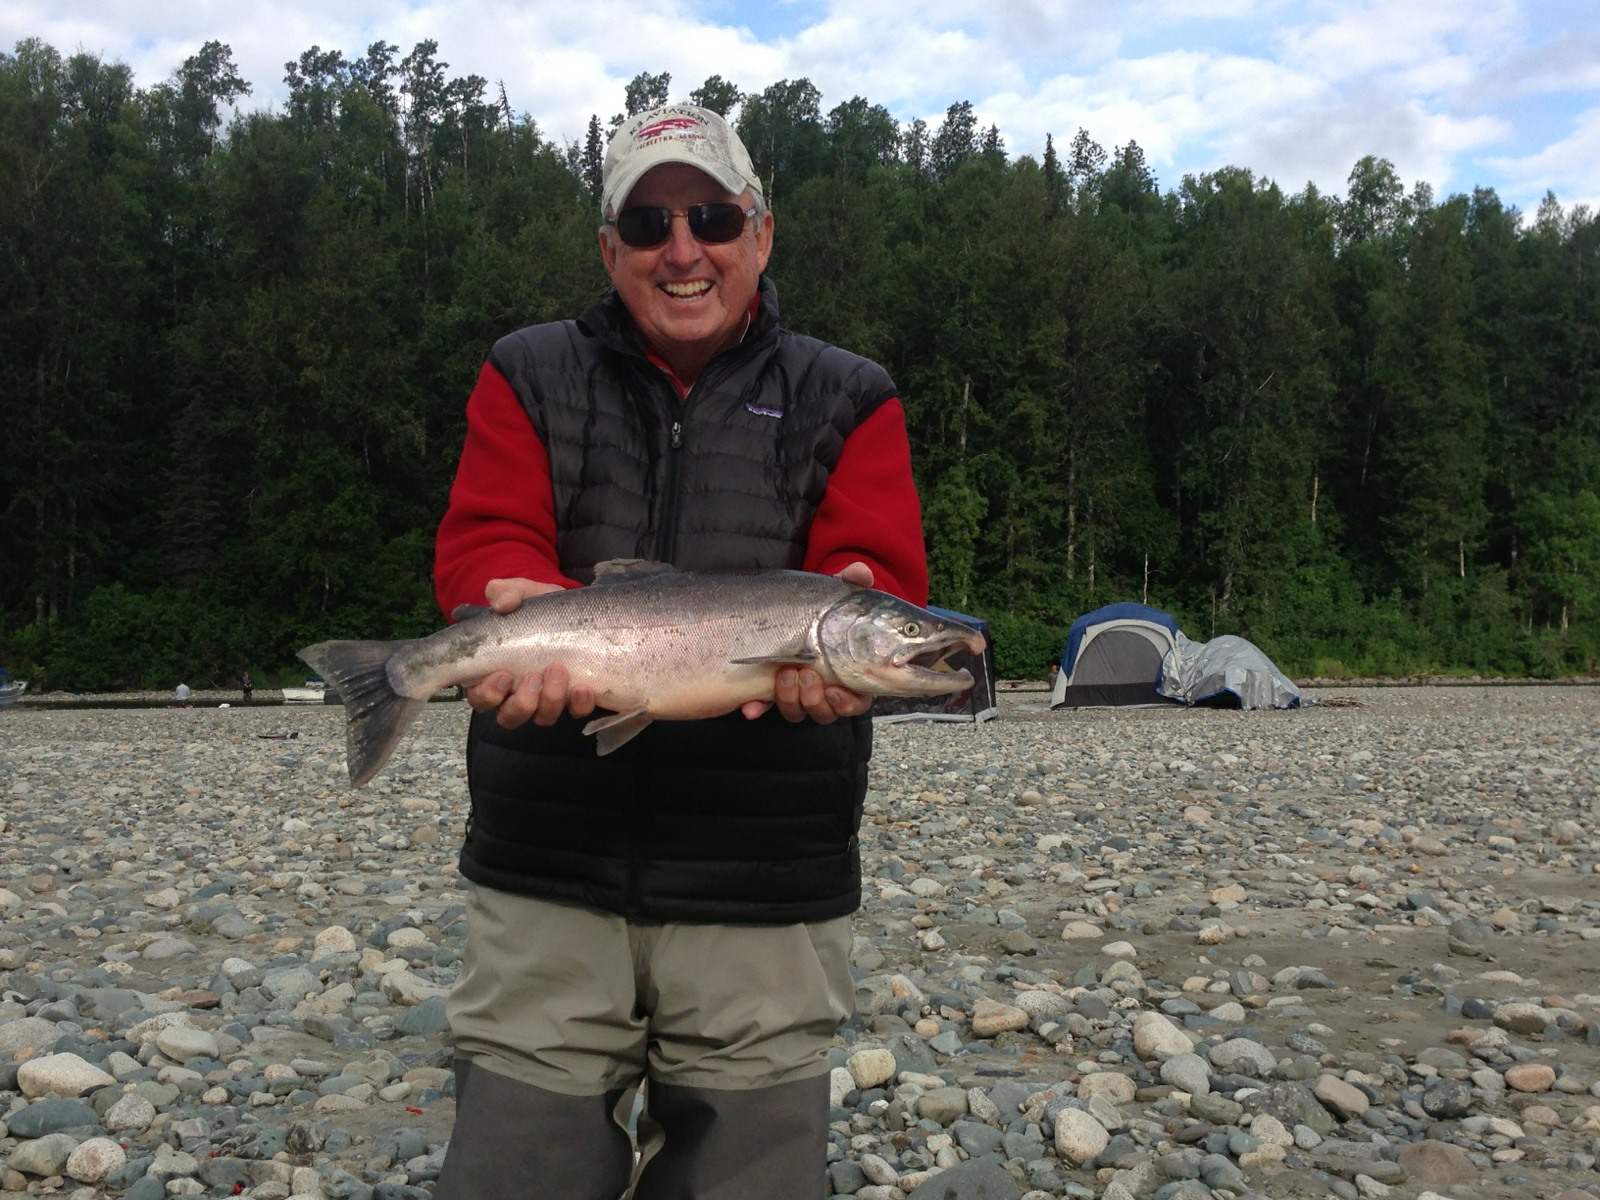 Fish on alaska salmon fishing report for august 14 2013 for Alaskan salmon fishing